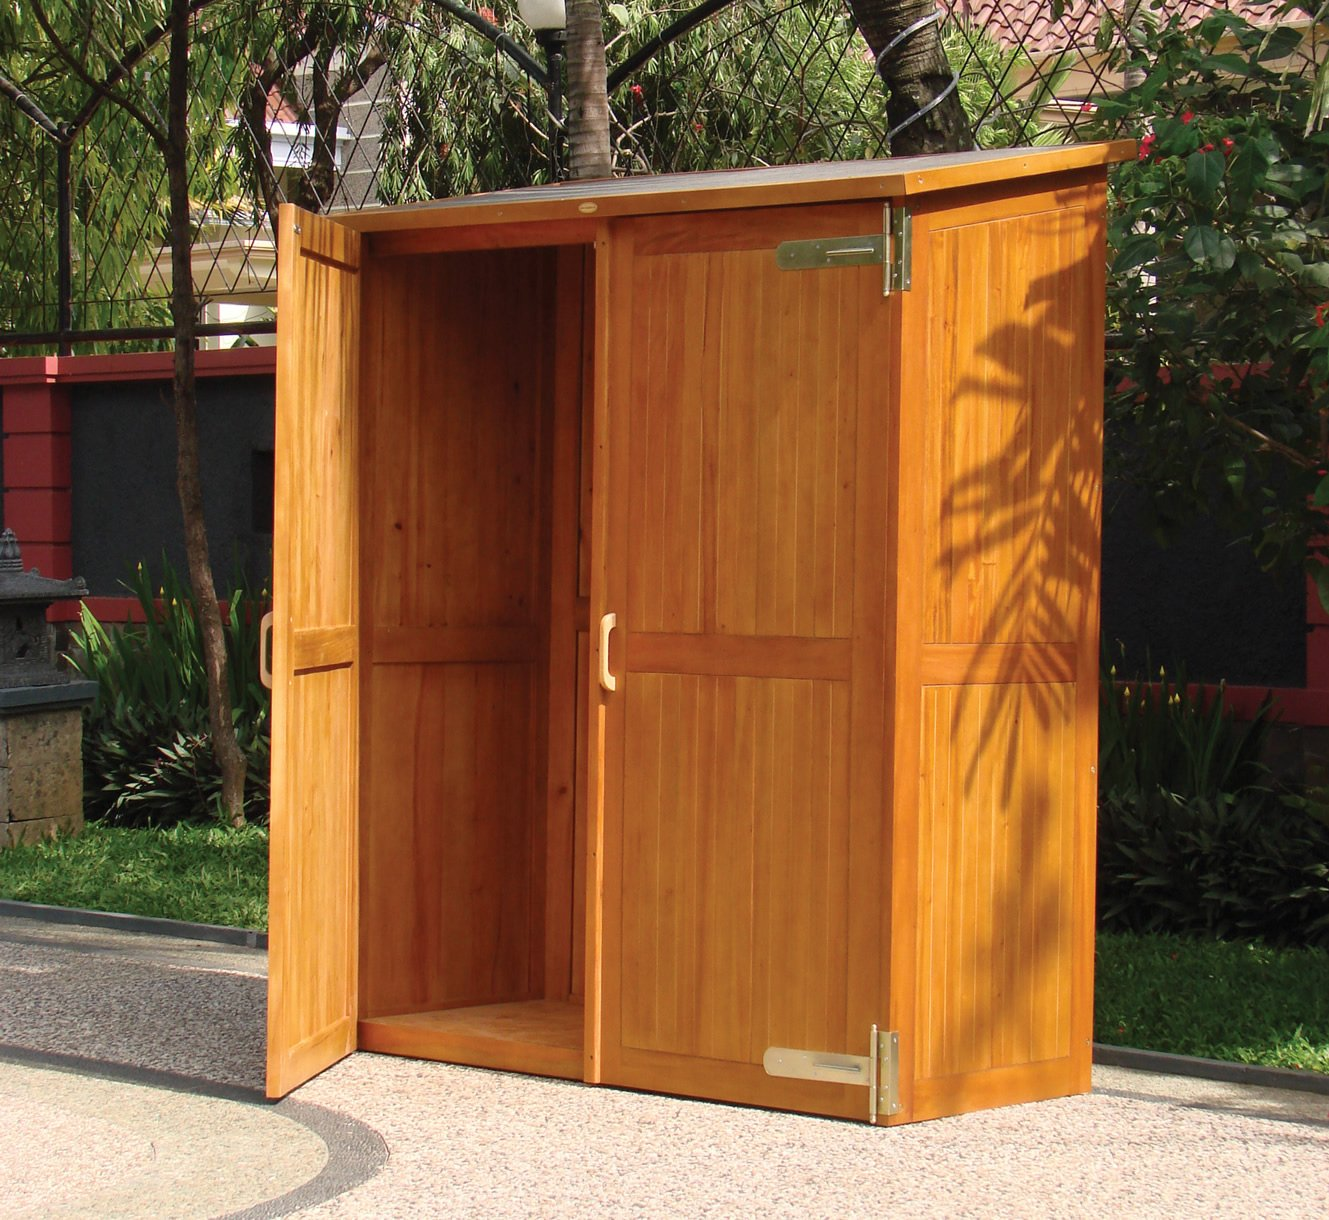 hardwood garden storage cabinet. Black Bedroom Furniture Sets. Home Design Ideas